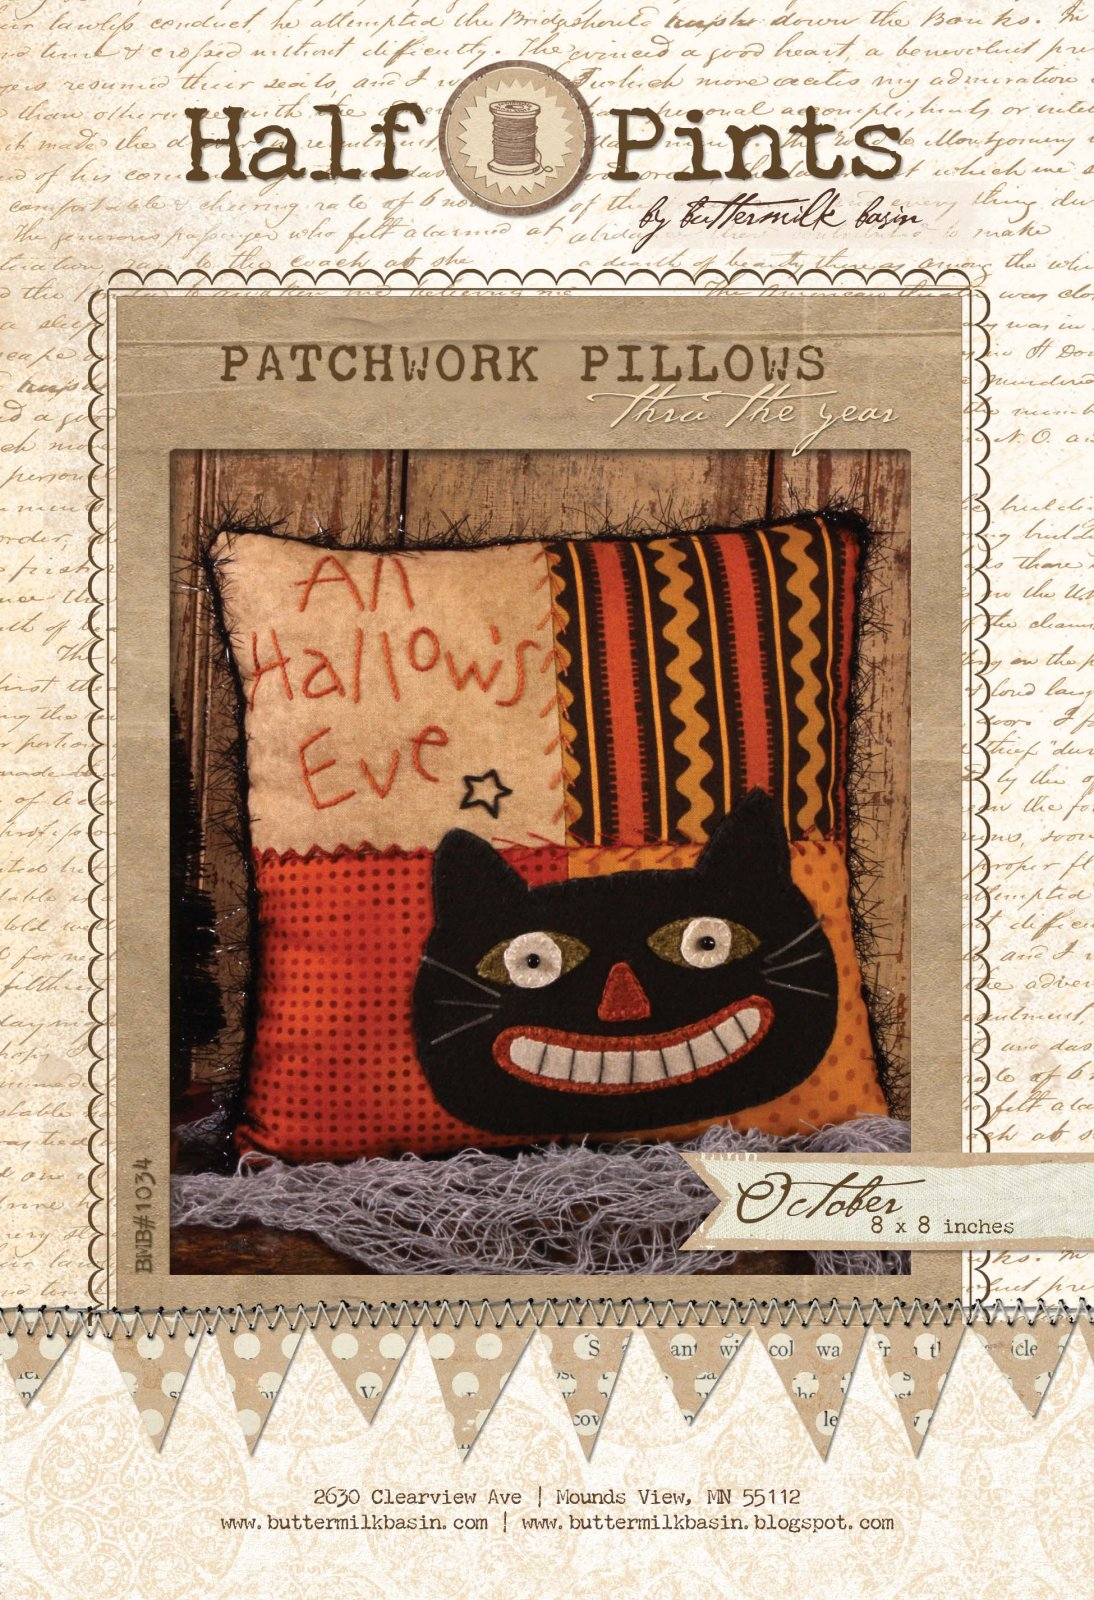 All Hallow's Eve Patchwork Pillow - October